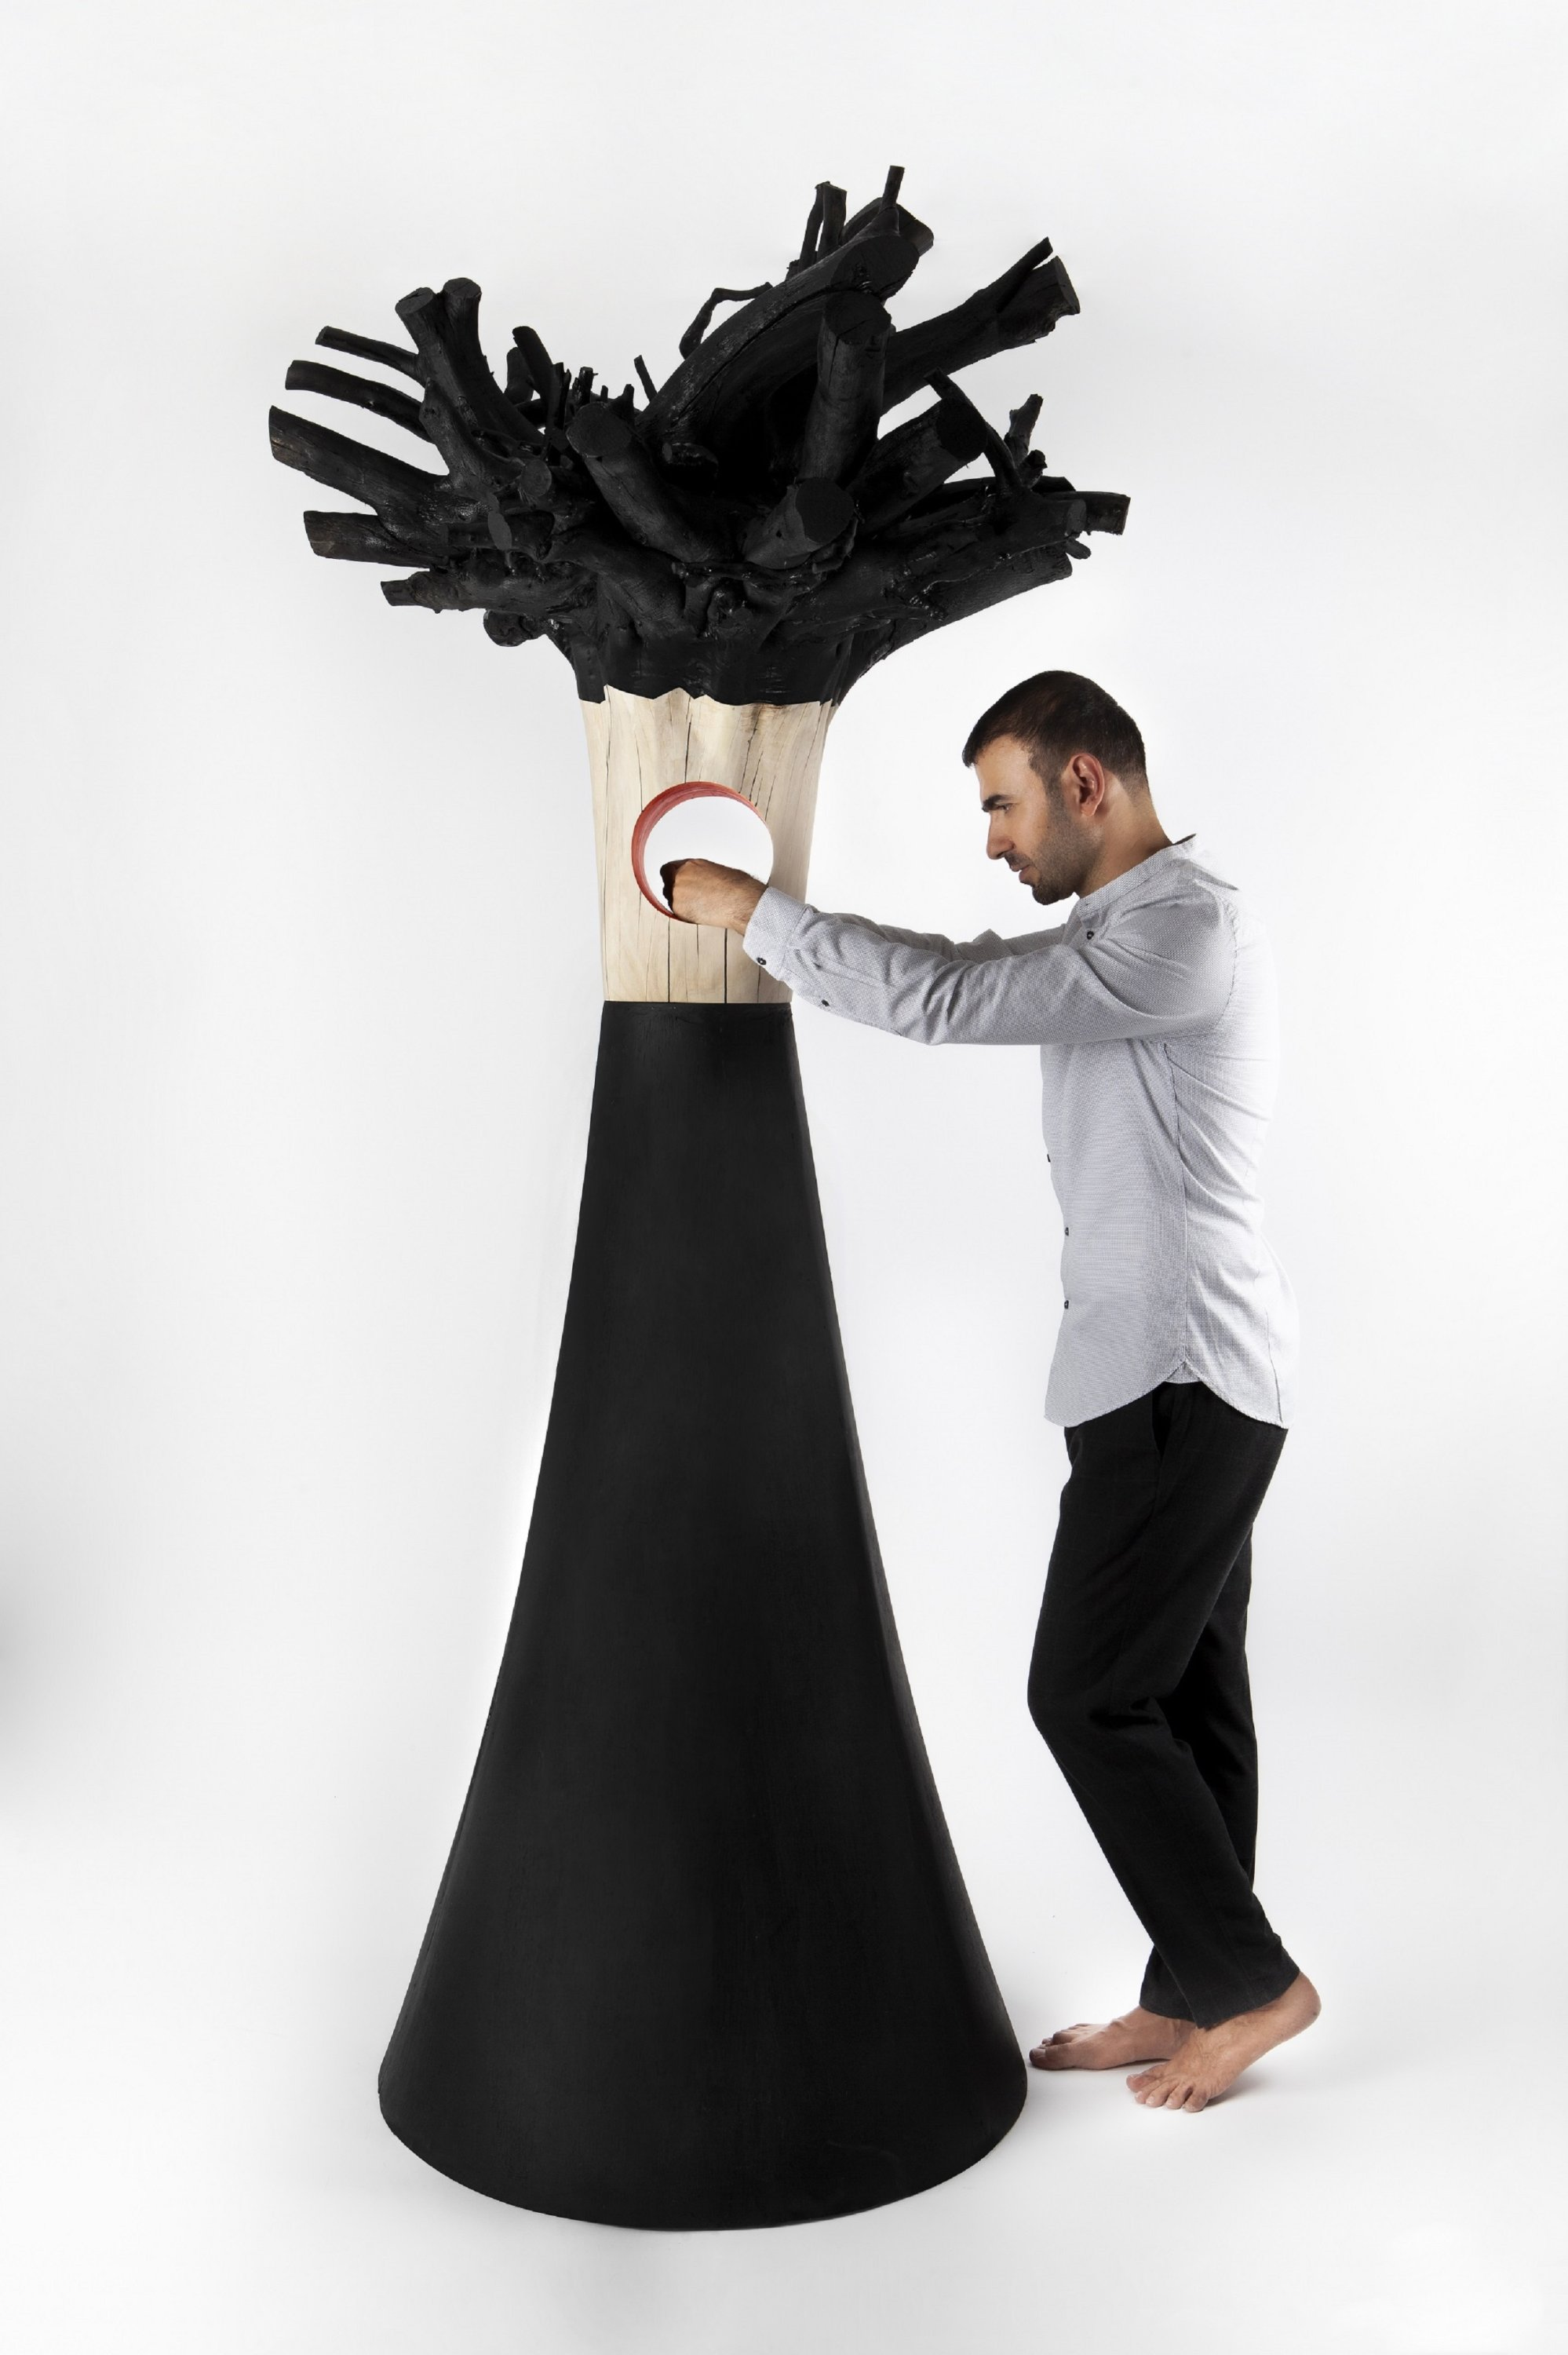 Ahmed Yajidar stands with one of his amorphous statues from